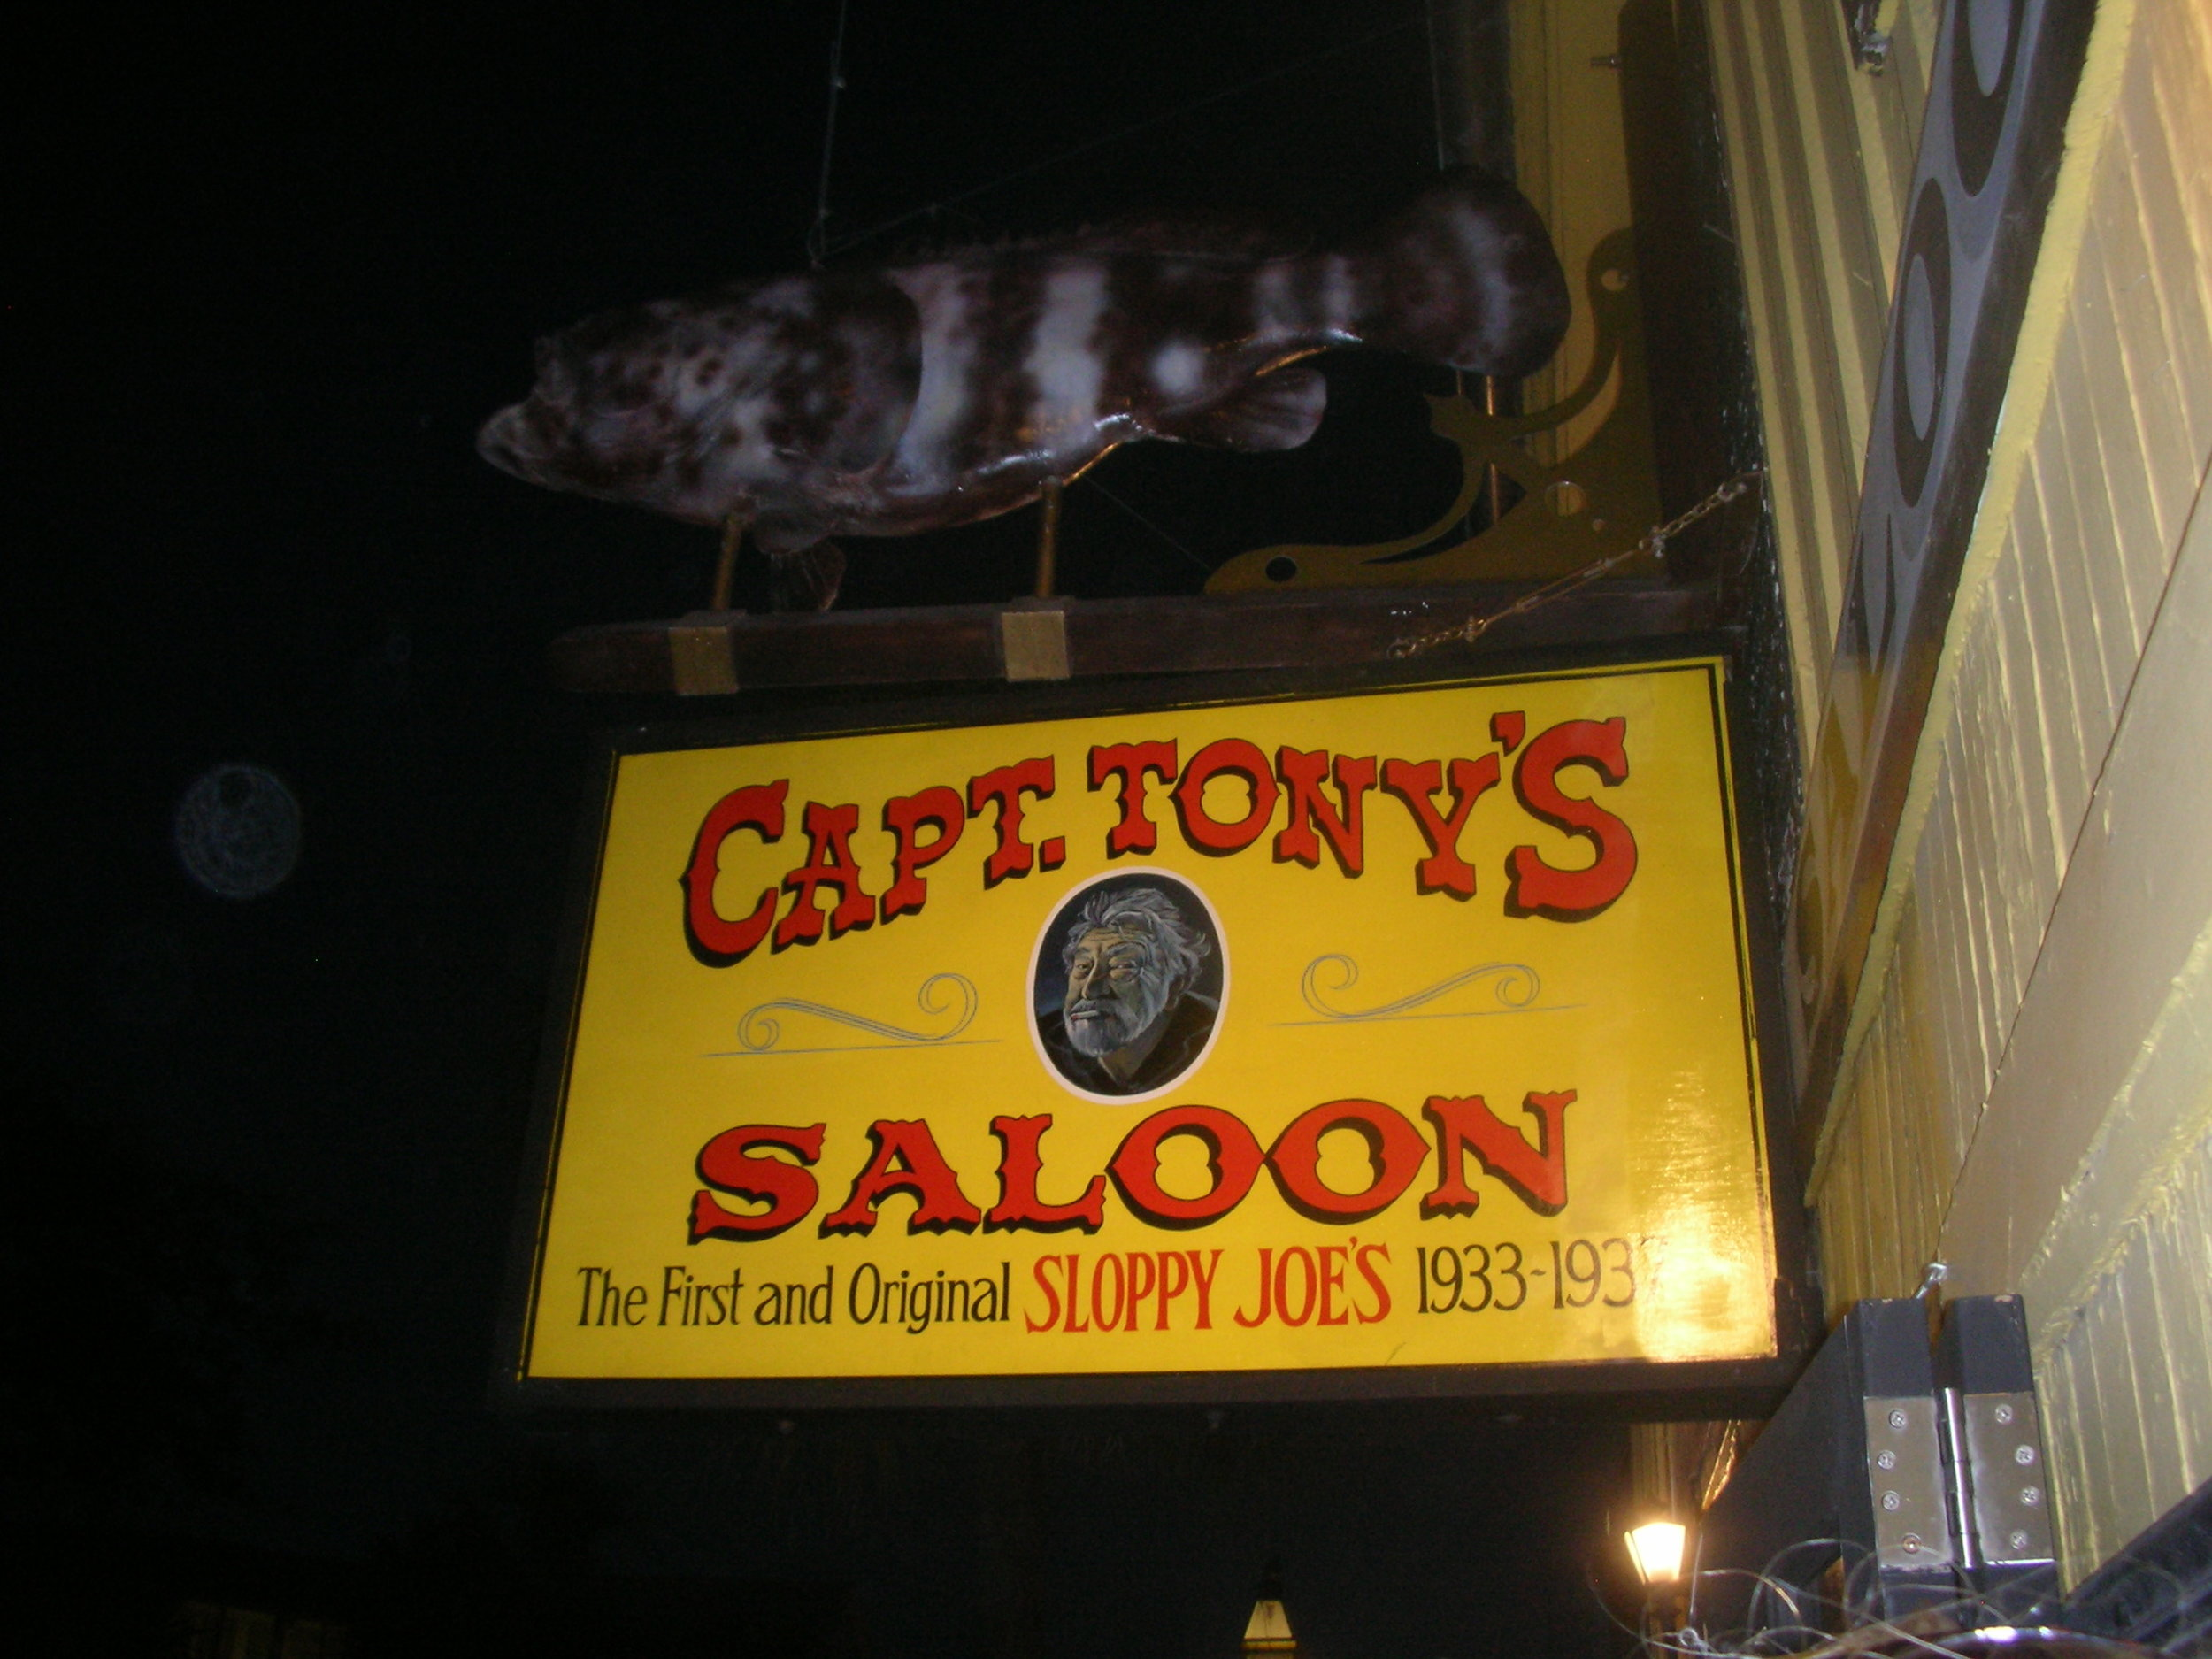 Captain Tony's for all you Jimmy Buffett fans out there